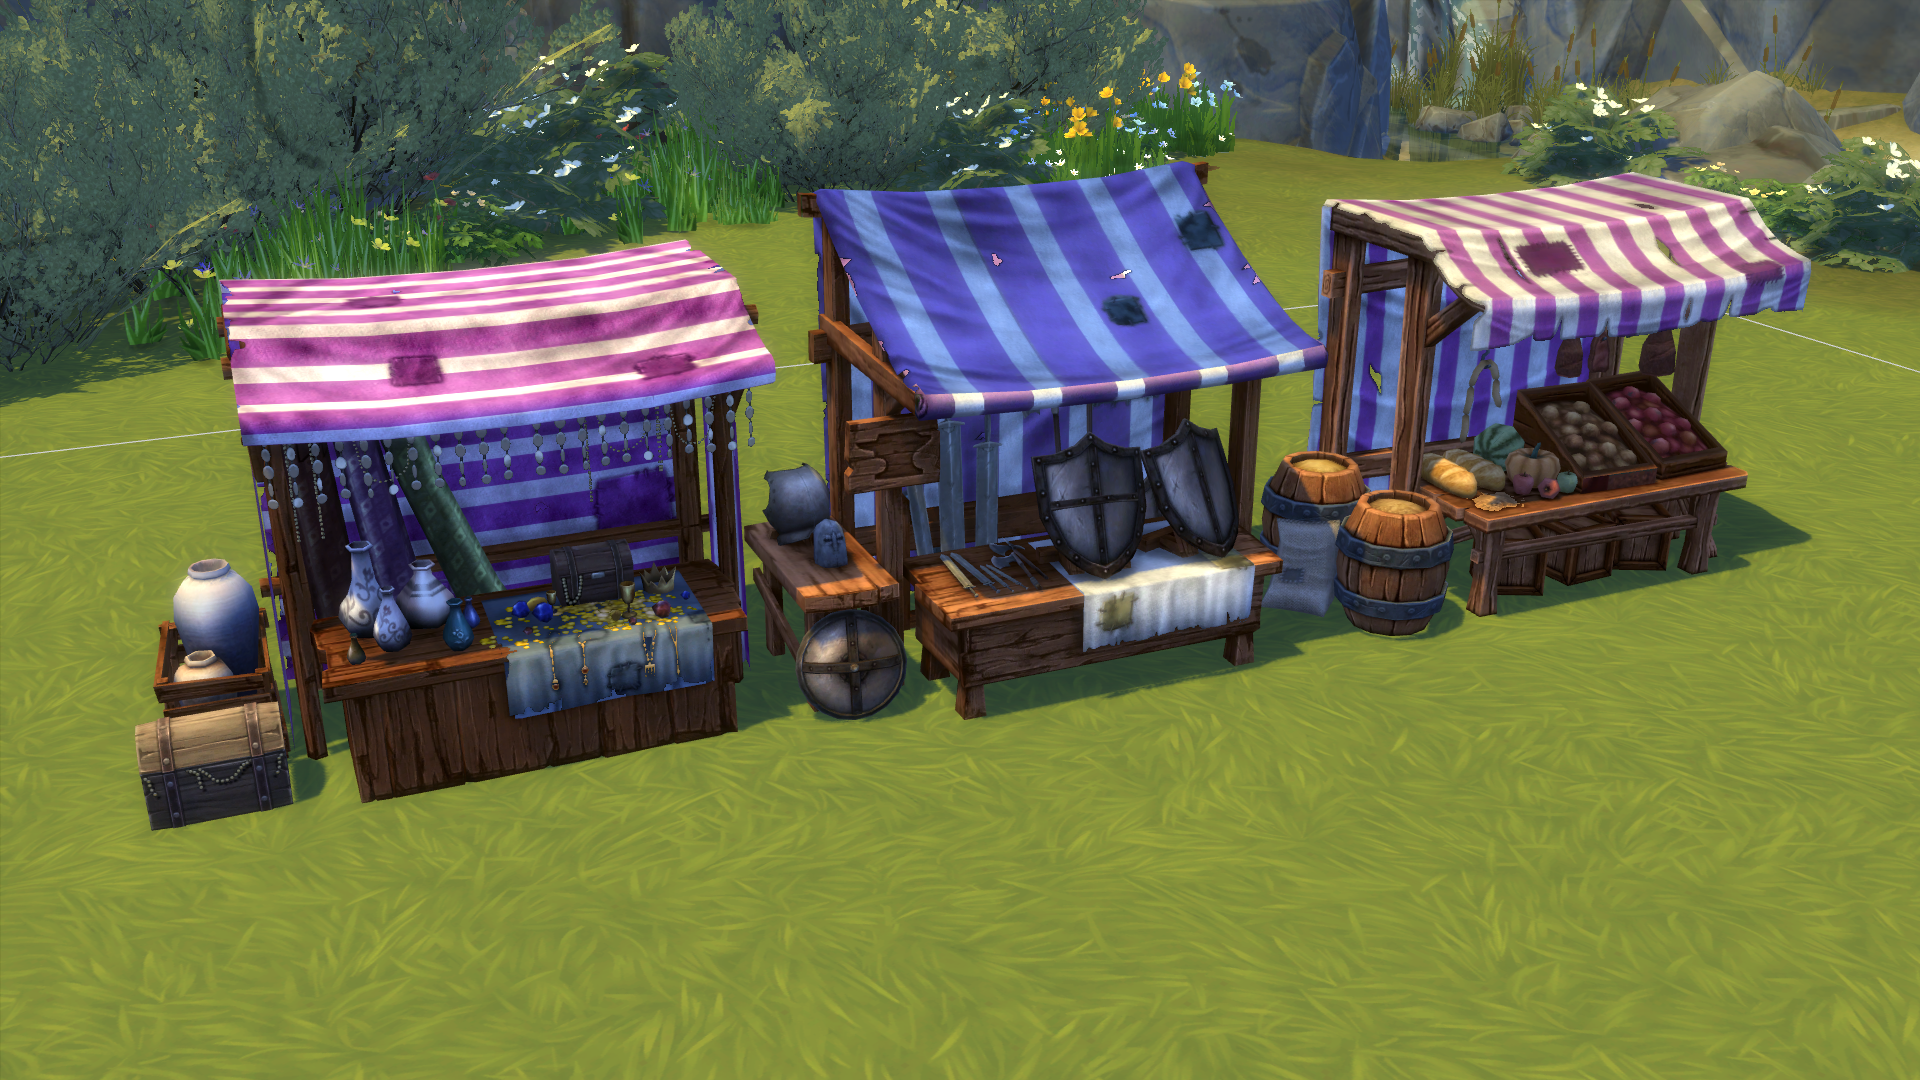 Mod The Sims Medieval Market Stuff Pack